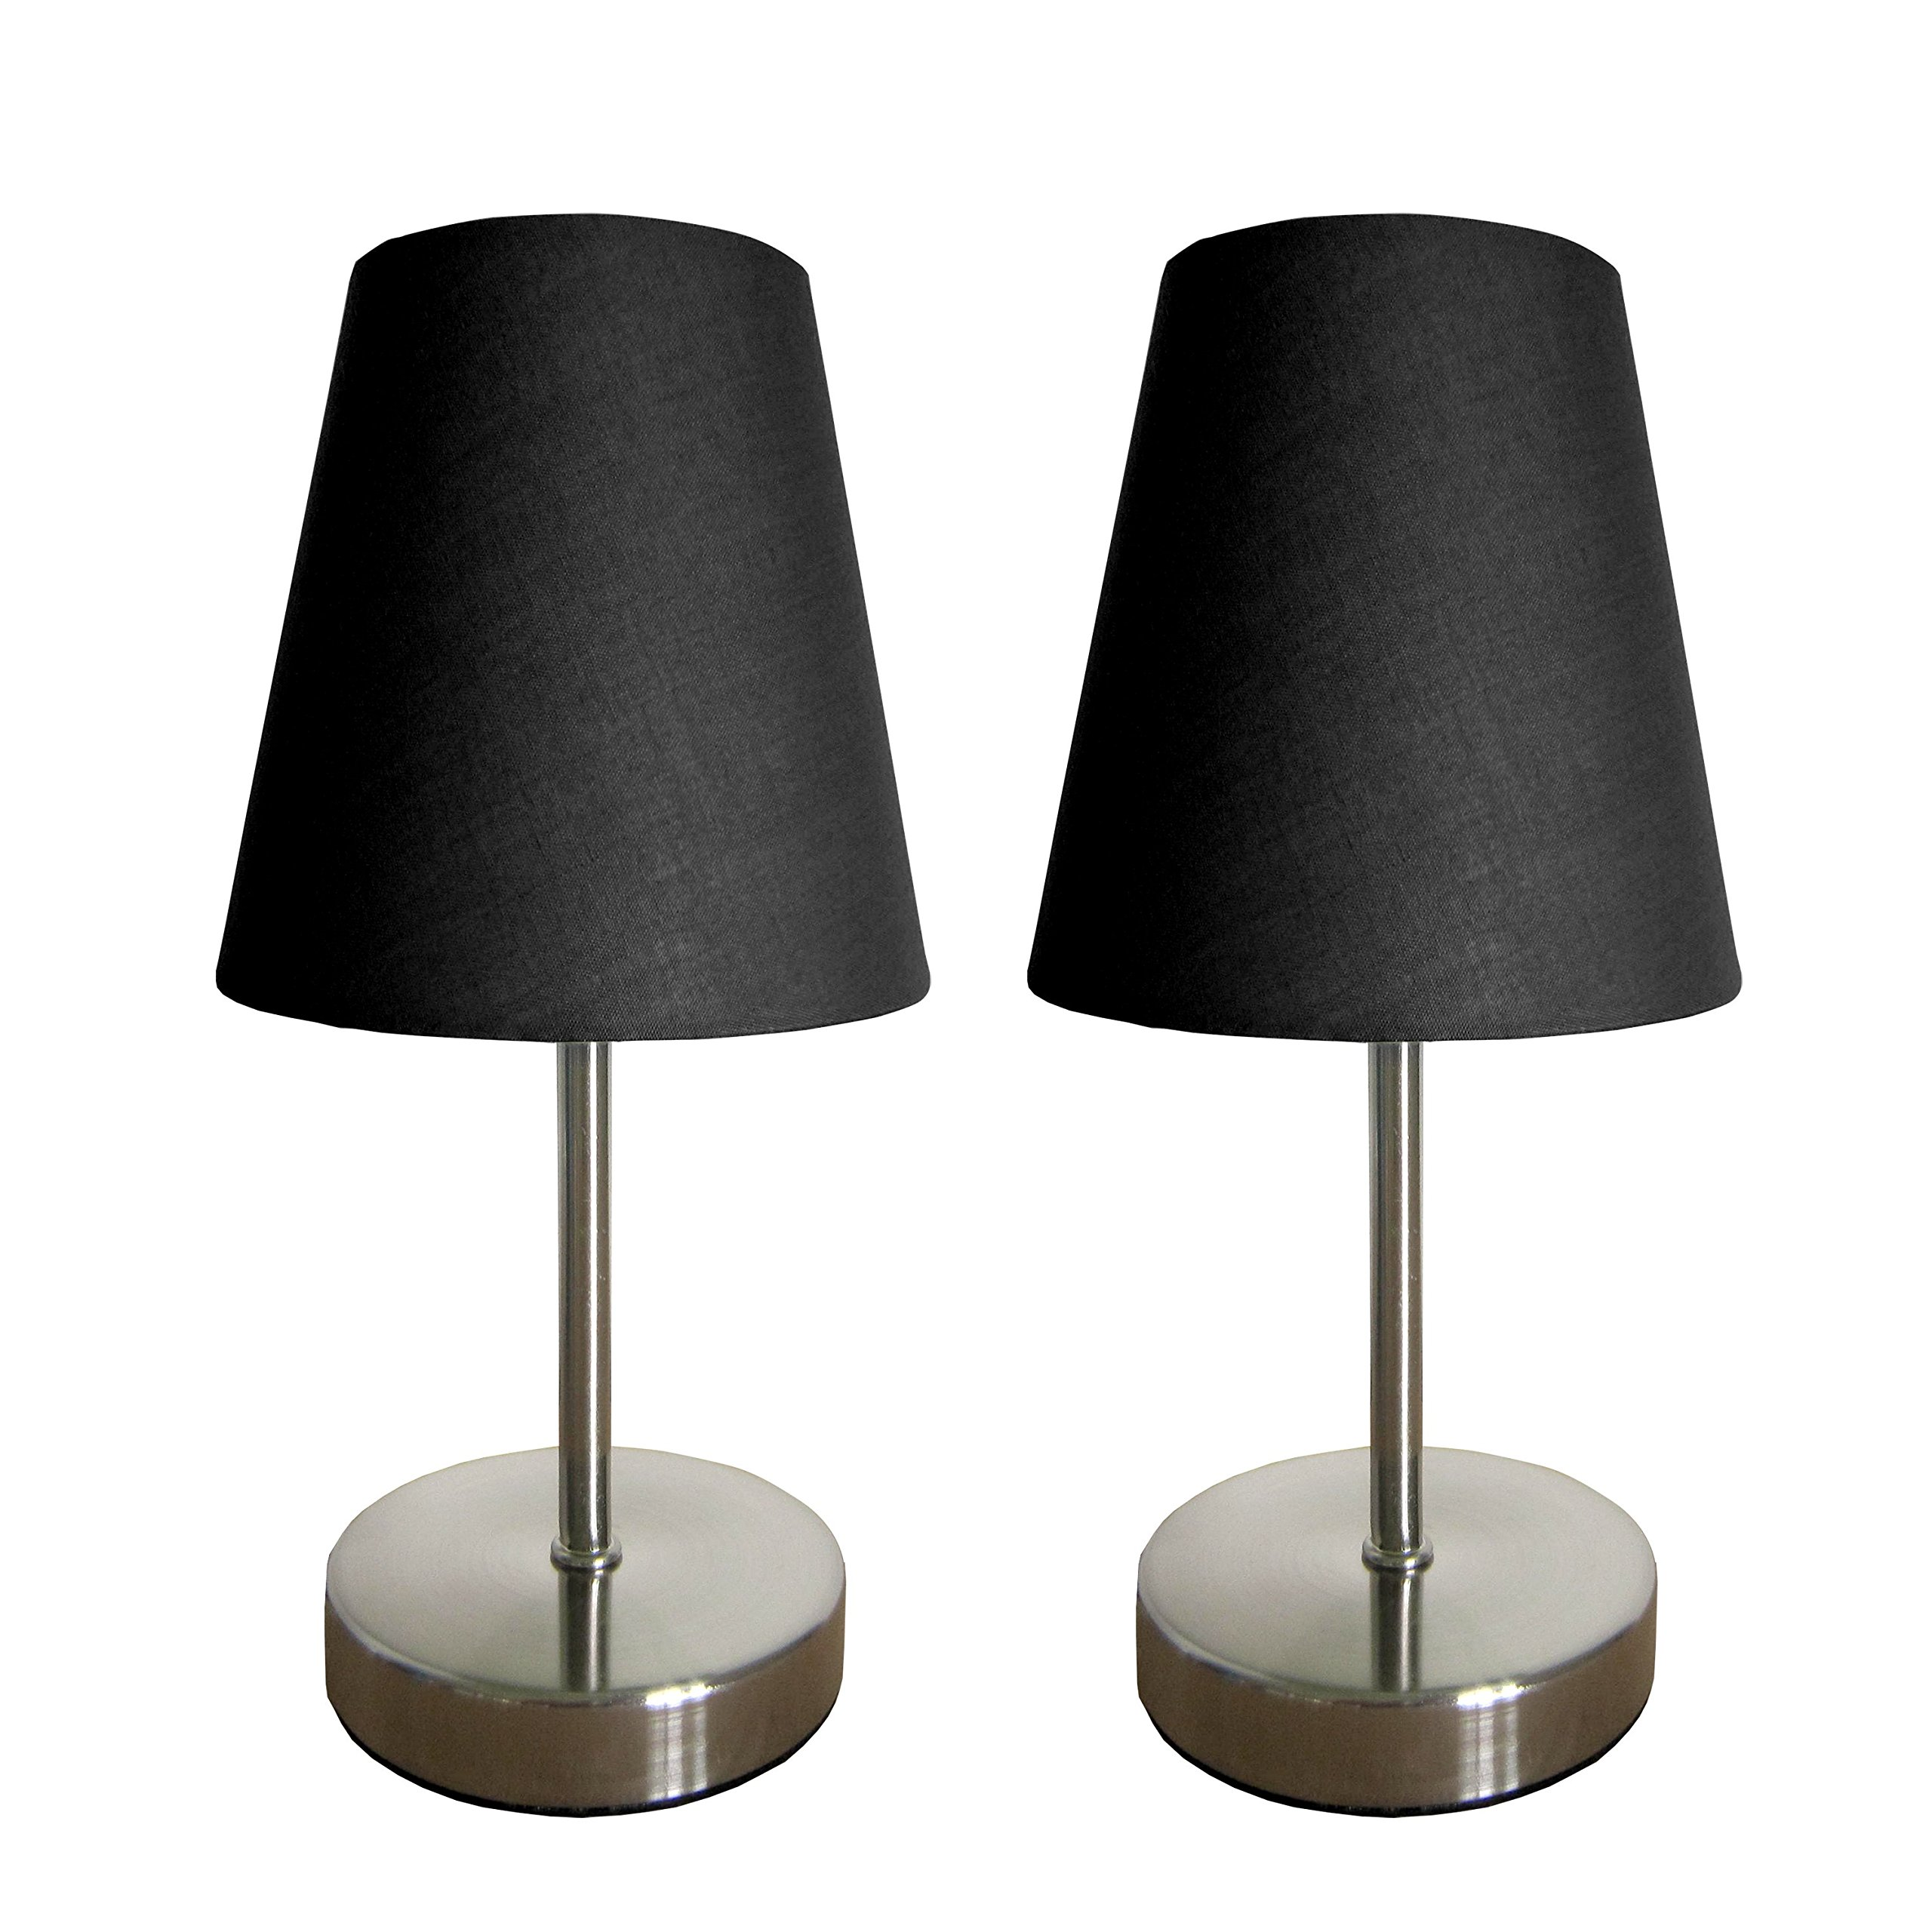 "Simple Designs Home LT2013-BLK-2PK Simple Designs Sand Nickel Mini Basic Table Lamp 2 Pack Set with Fabric Shades, 4.88"" x 4.88"" x 10"", Black"